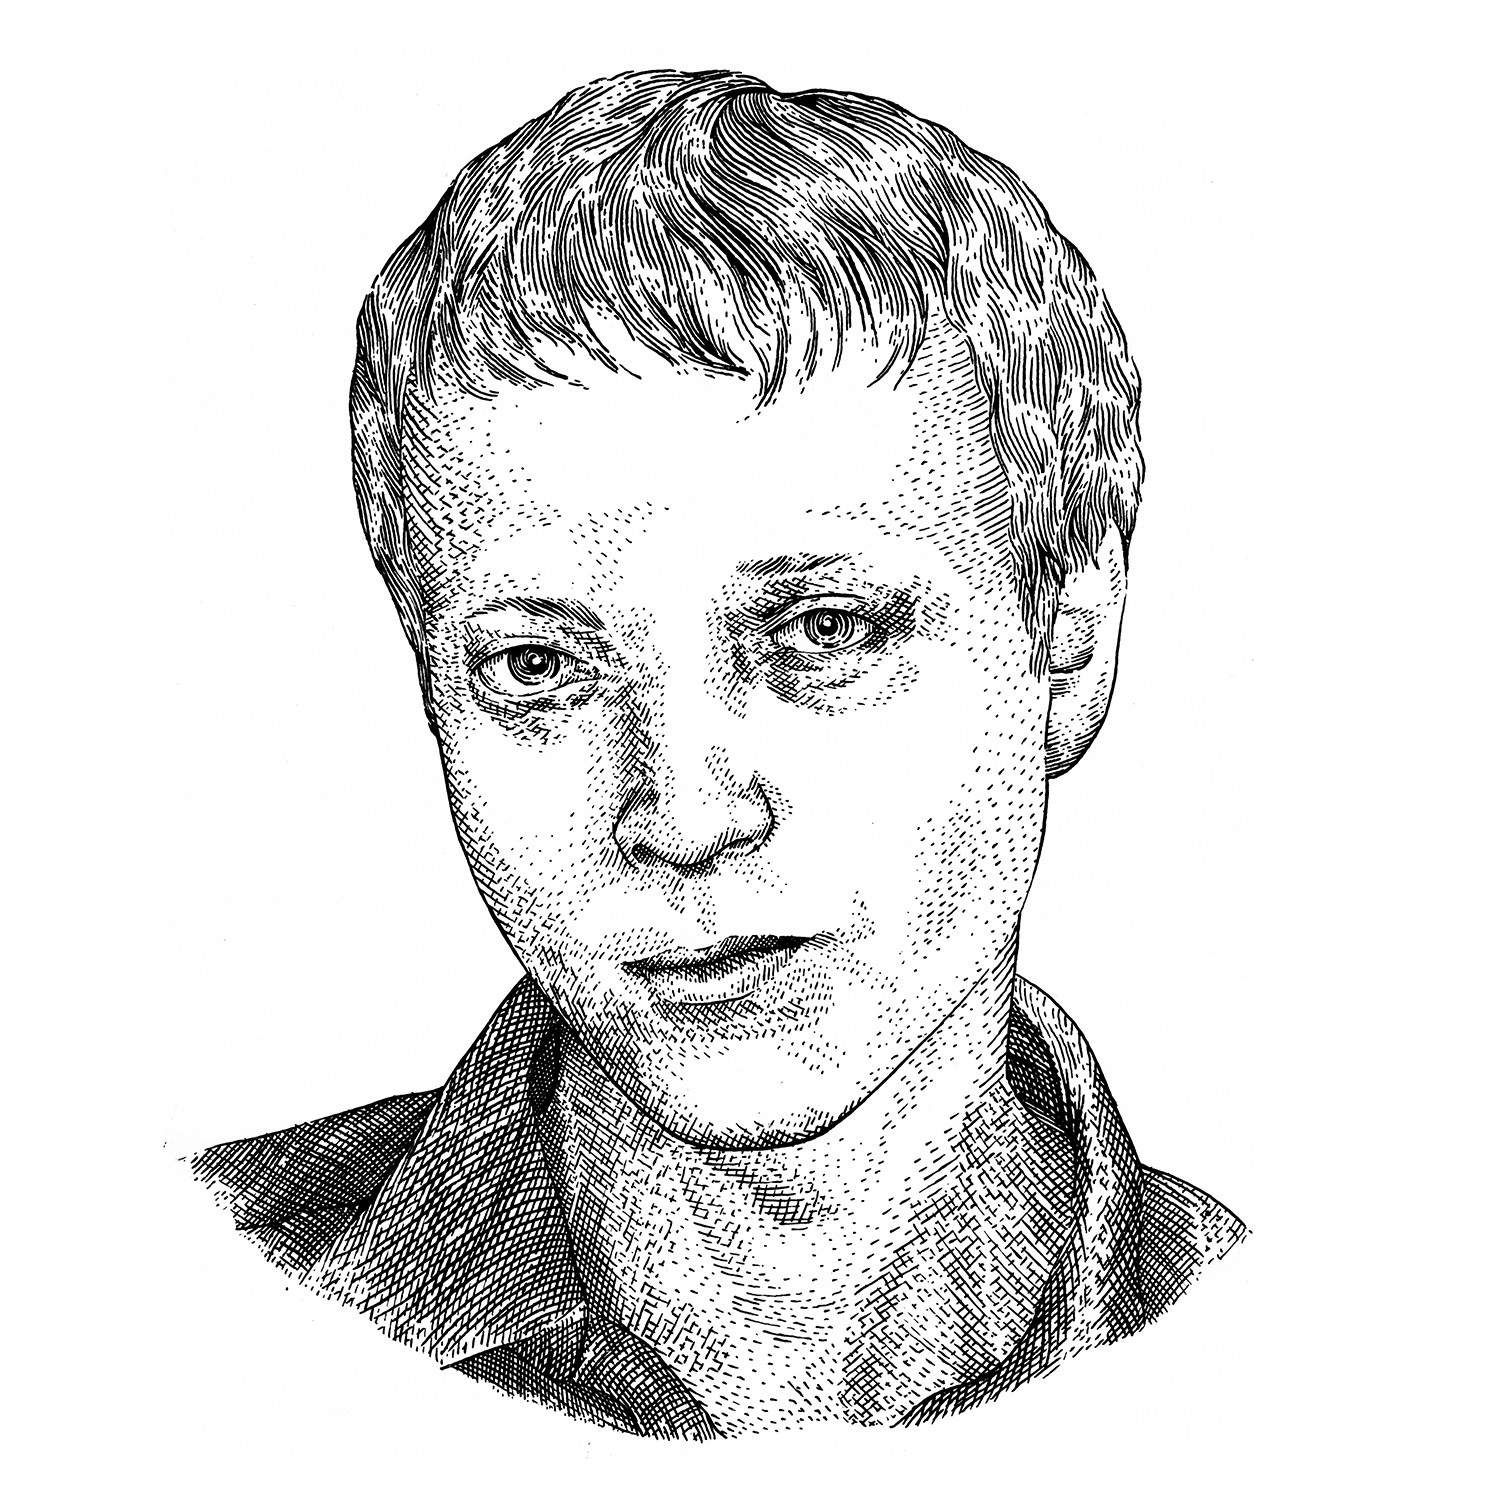 Hedcut illustration of an author